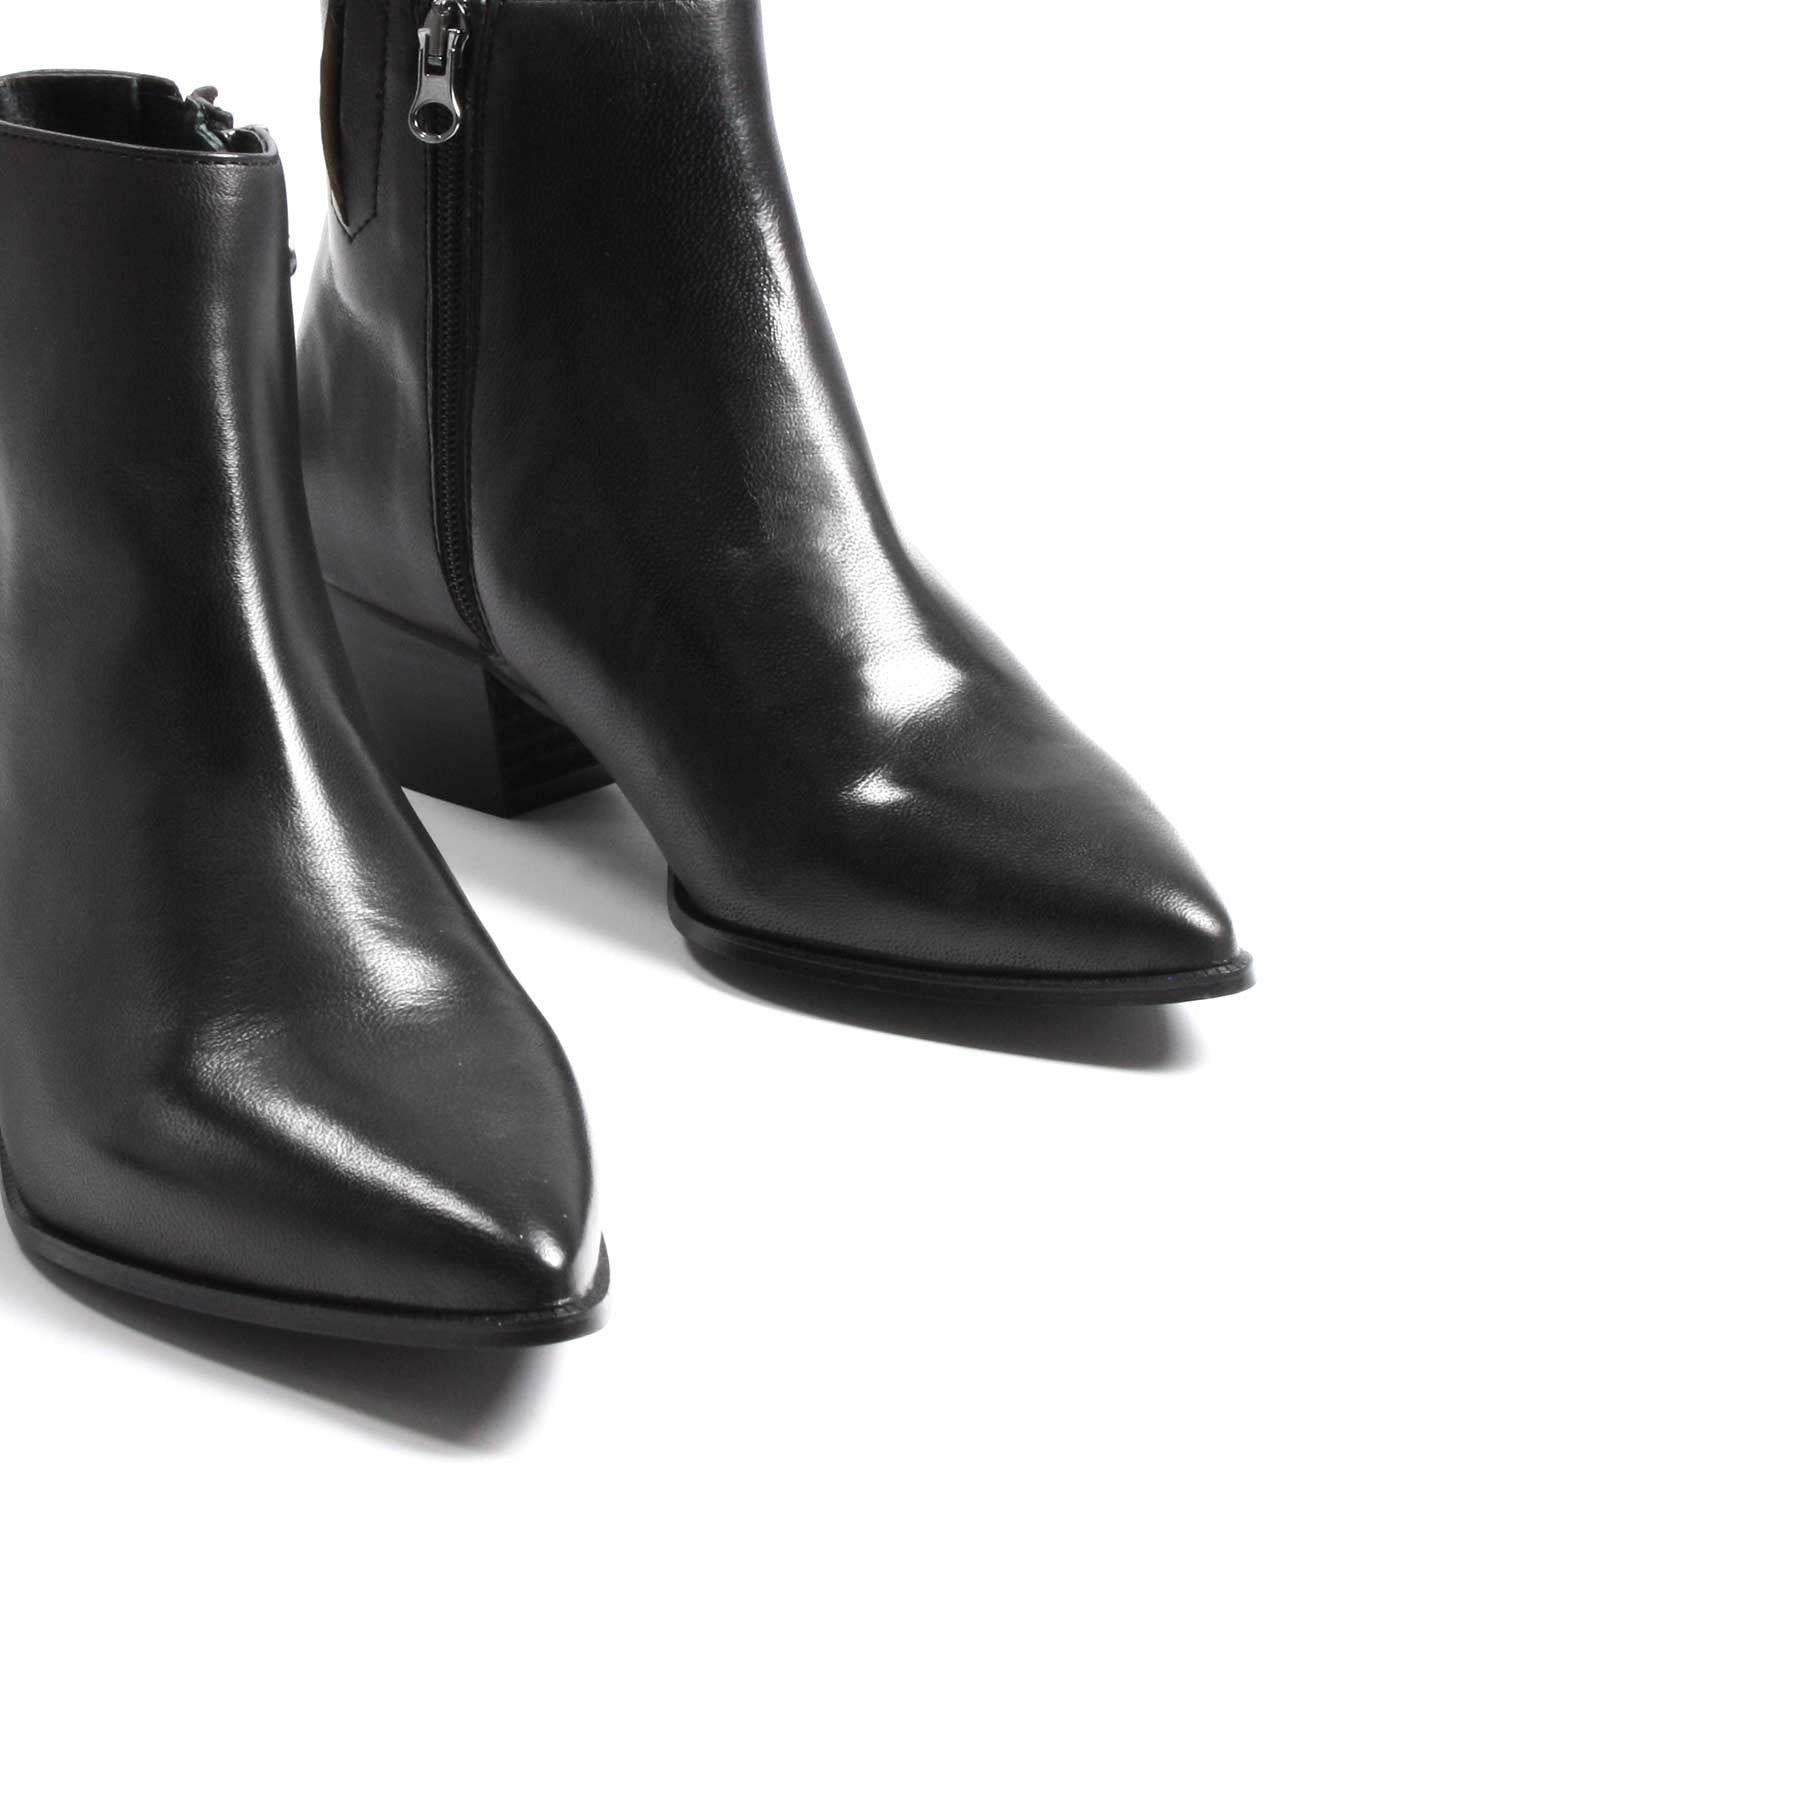 Boots, Bleecker Black Leather - Lintervalle shoes for woman